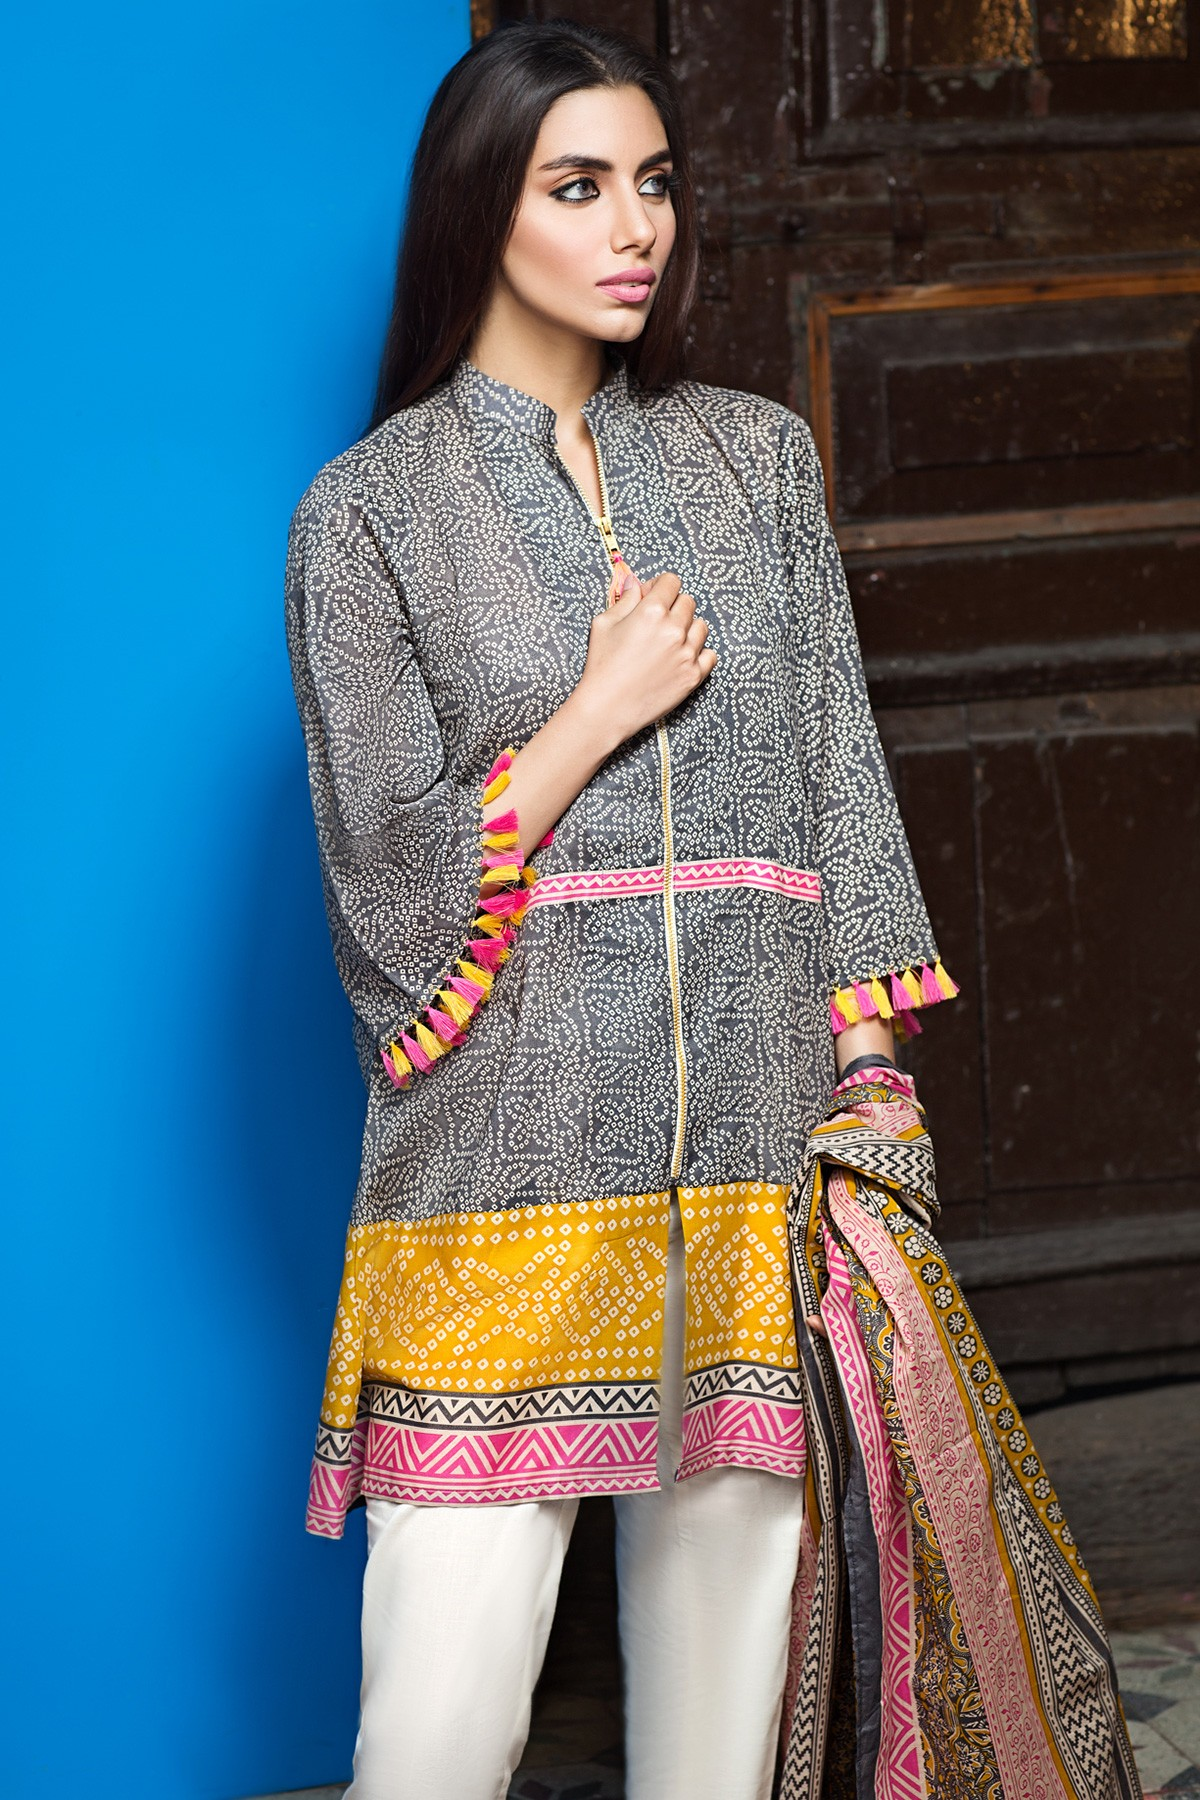 Khaadi Latest Summer Lawn Dresses Designs Collection 2017 2018